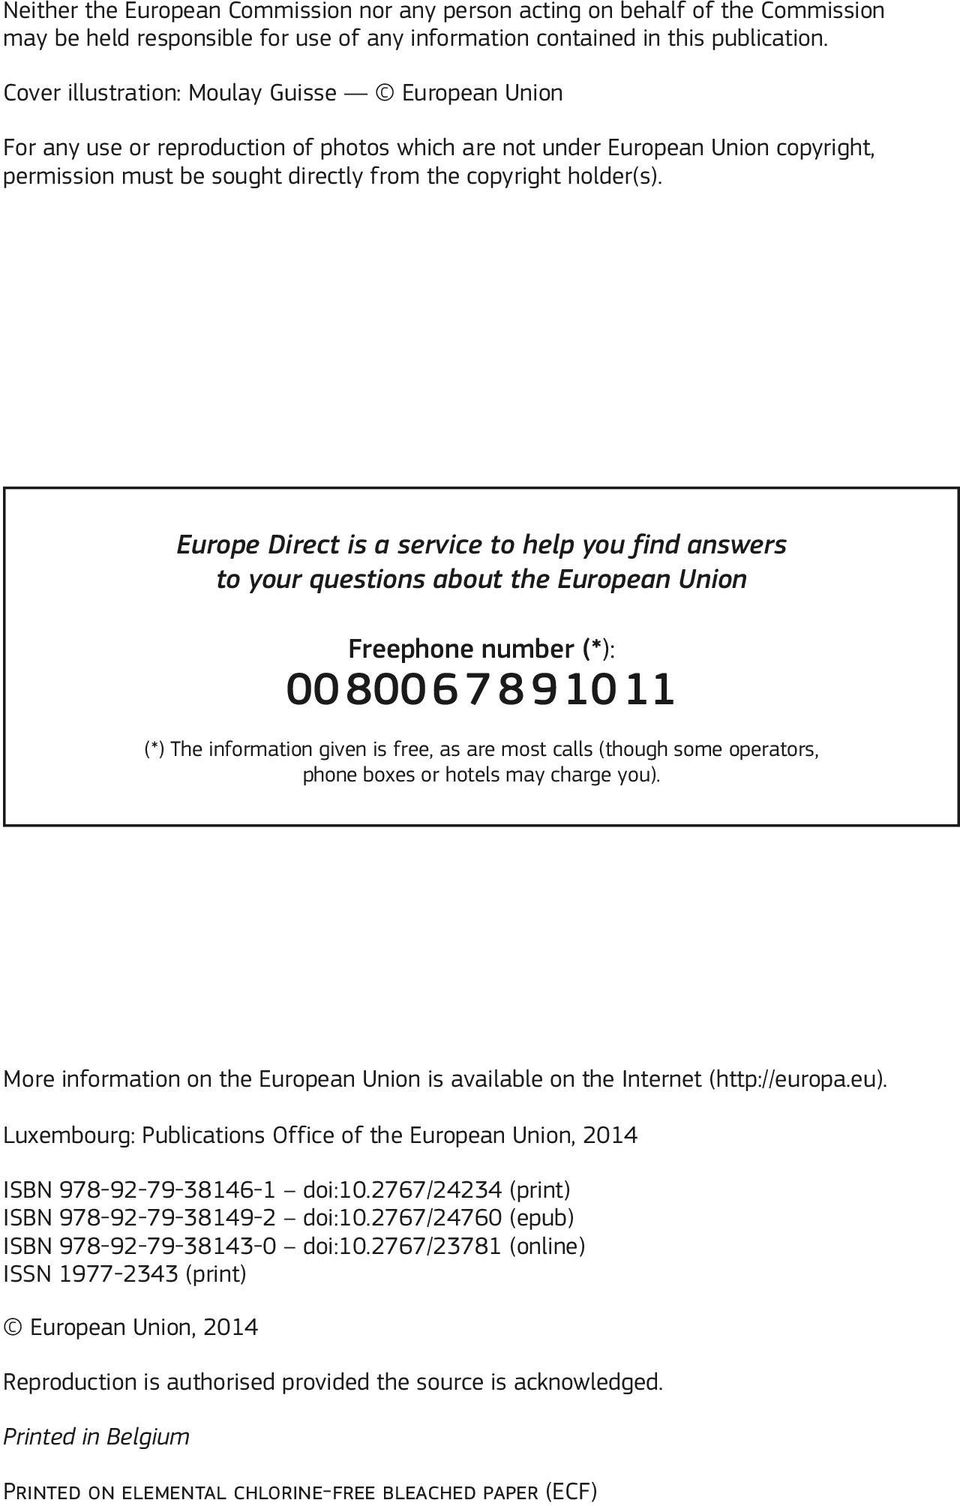 Europe Direct is a service to help you find answers to your questions about the European Union Freephone number (*): 00 800 6 7 8 9 10 11 (*) The information given is free, as are most calls (though